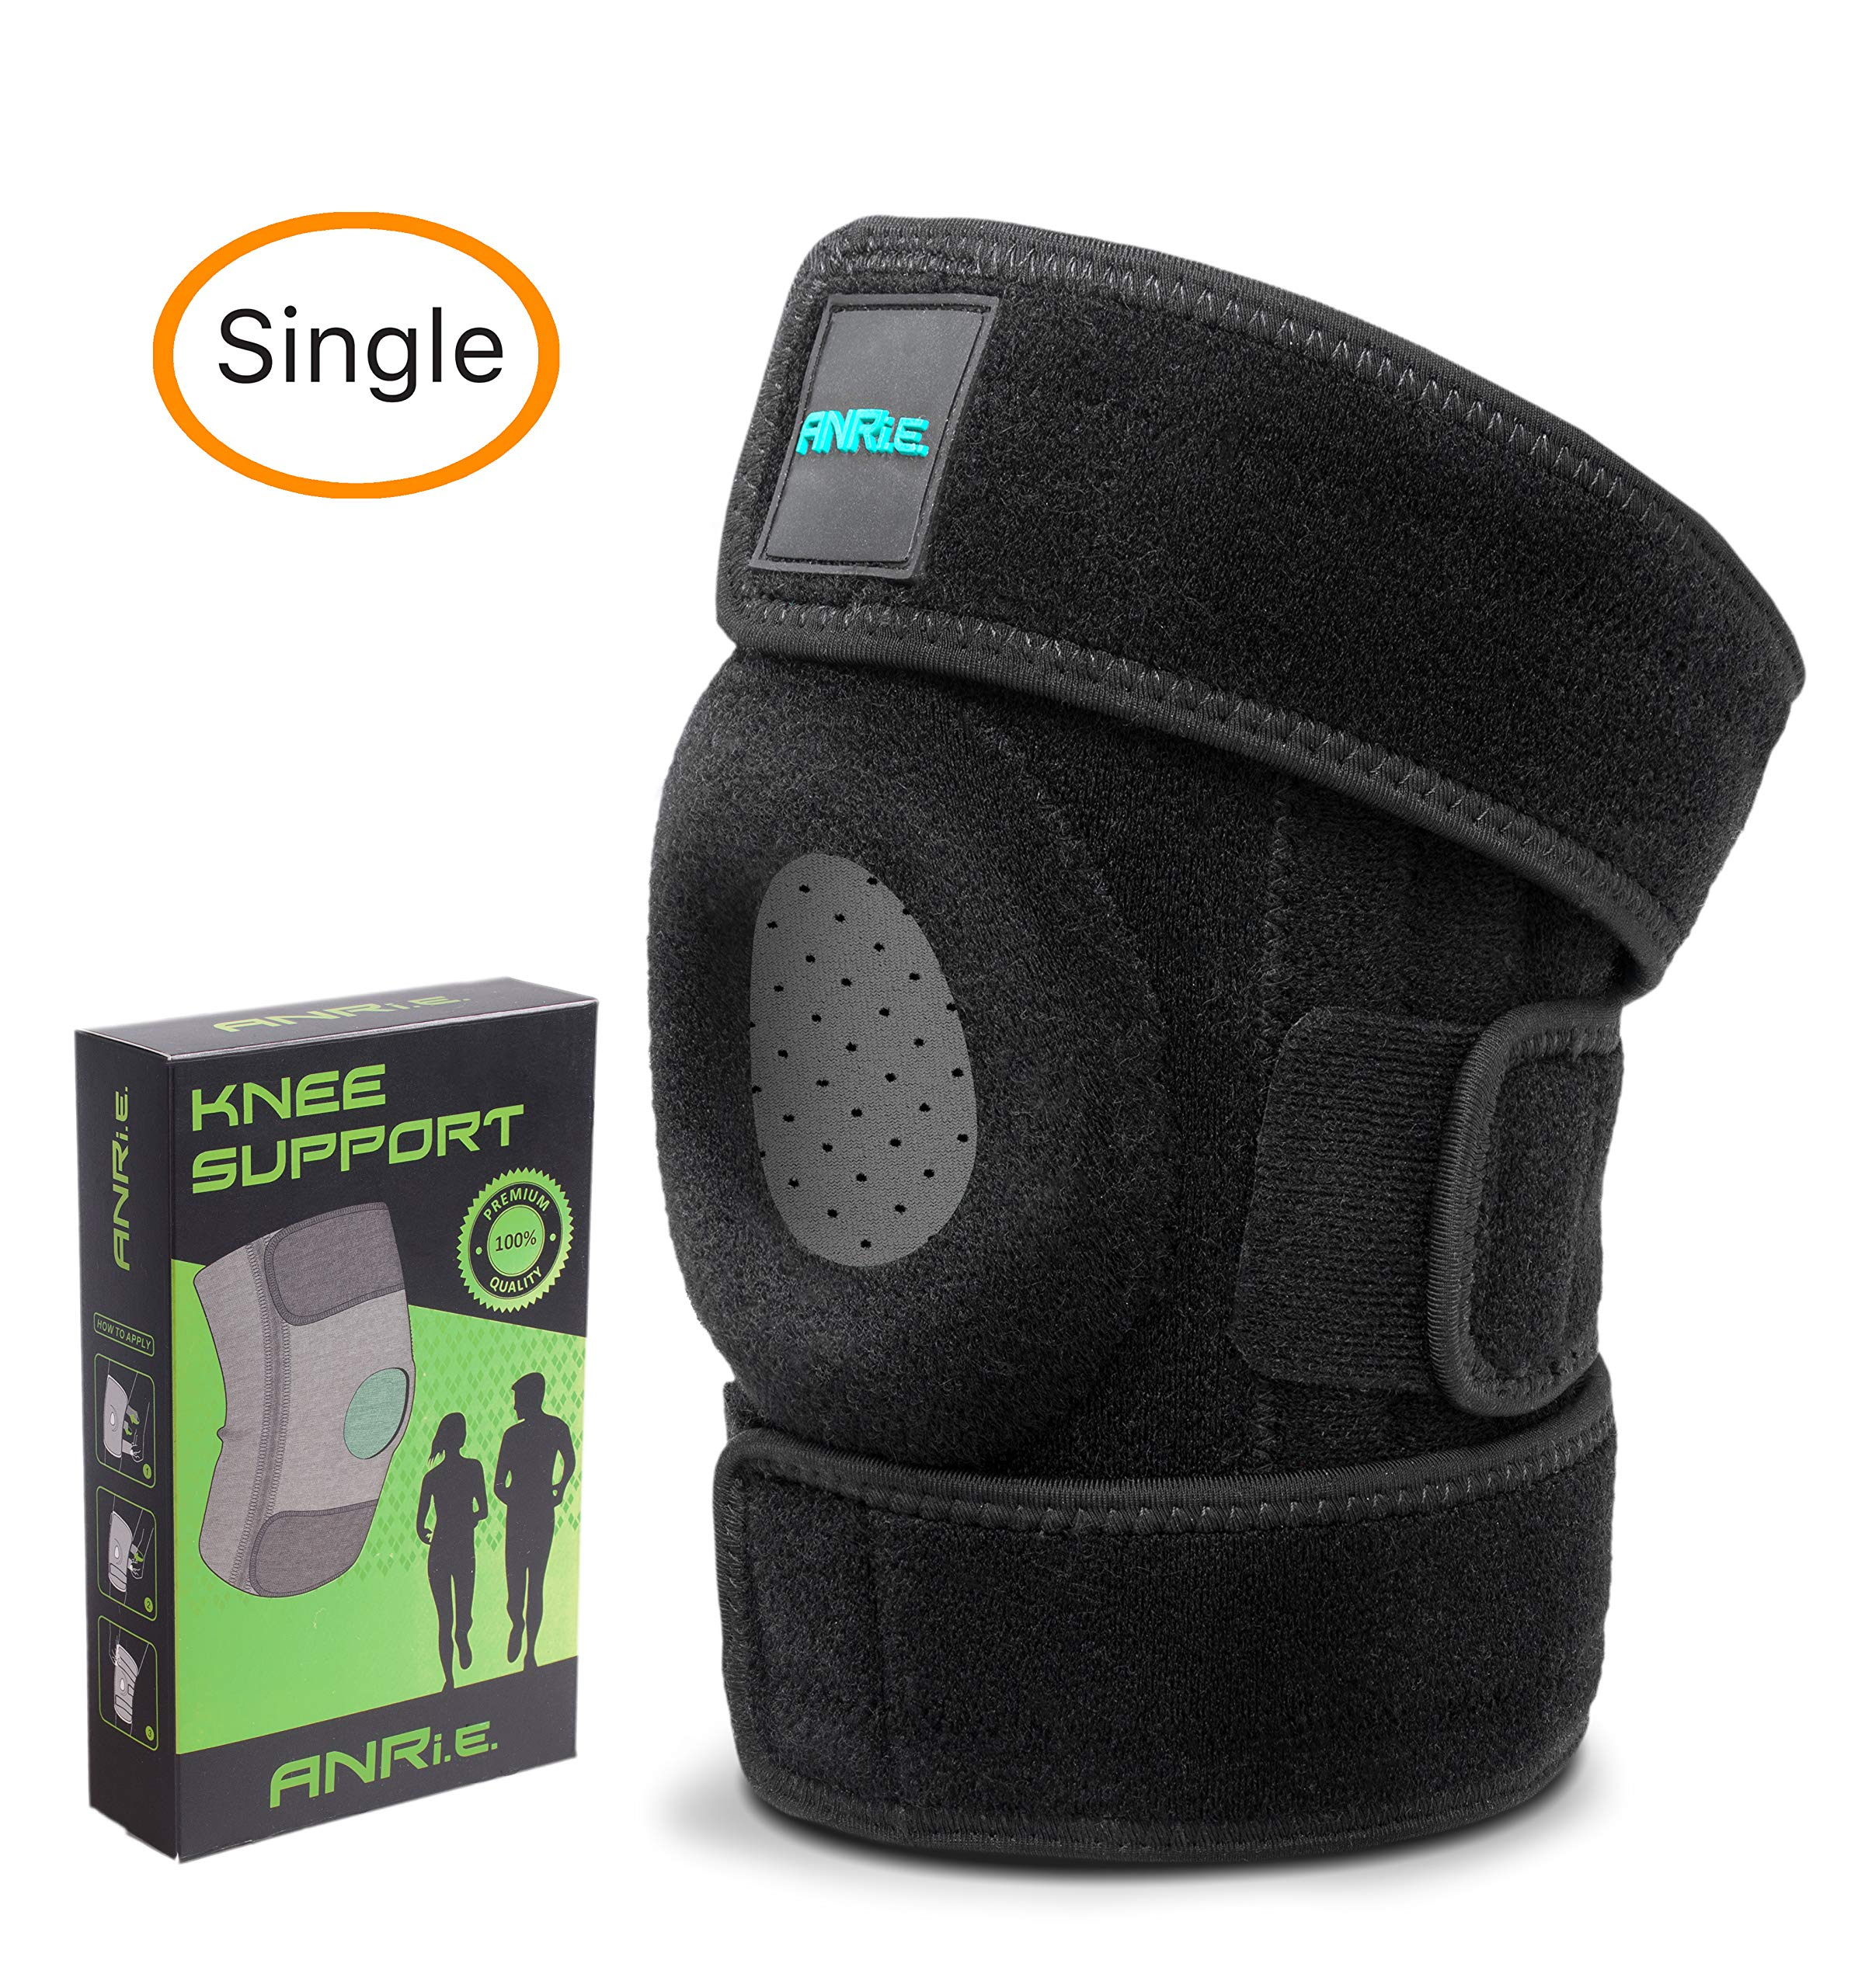 ANRI.E. Knee Brace Support for Meniscus Tear Arthritis ACL MCL LCL PCL Running Hiking Stabilizing - Best Adjustable Patella Stabilizer Knee Braces for Women Men (Black/Gray, One Size (12.3''-16.5''))